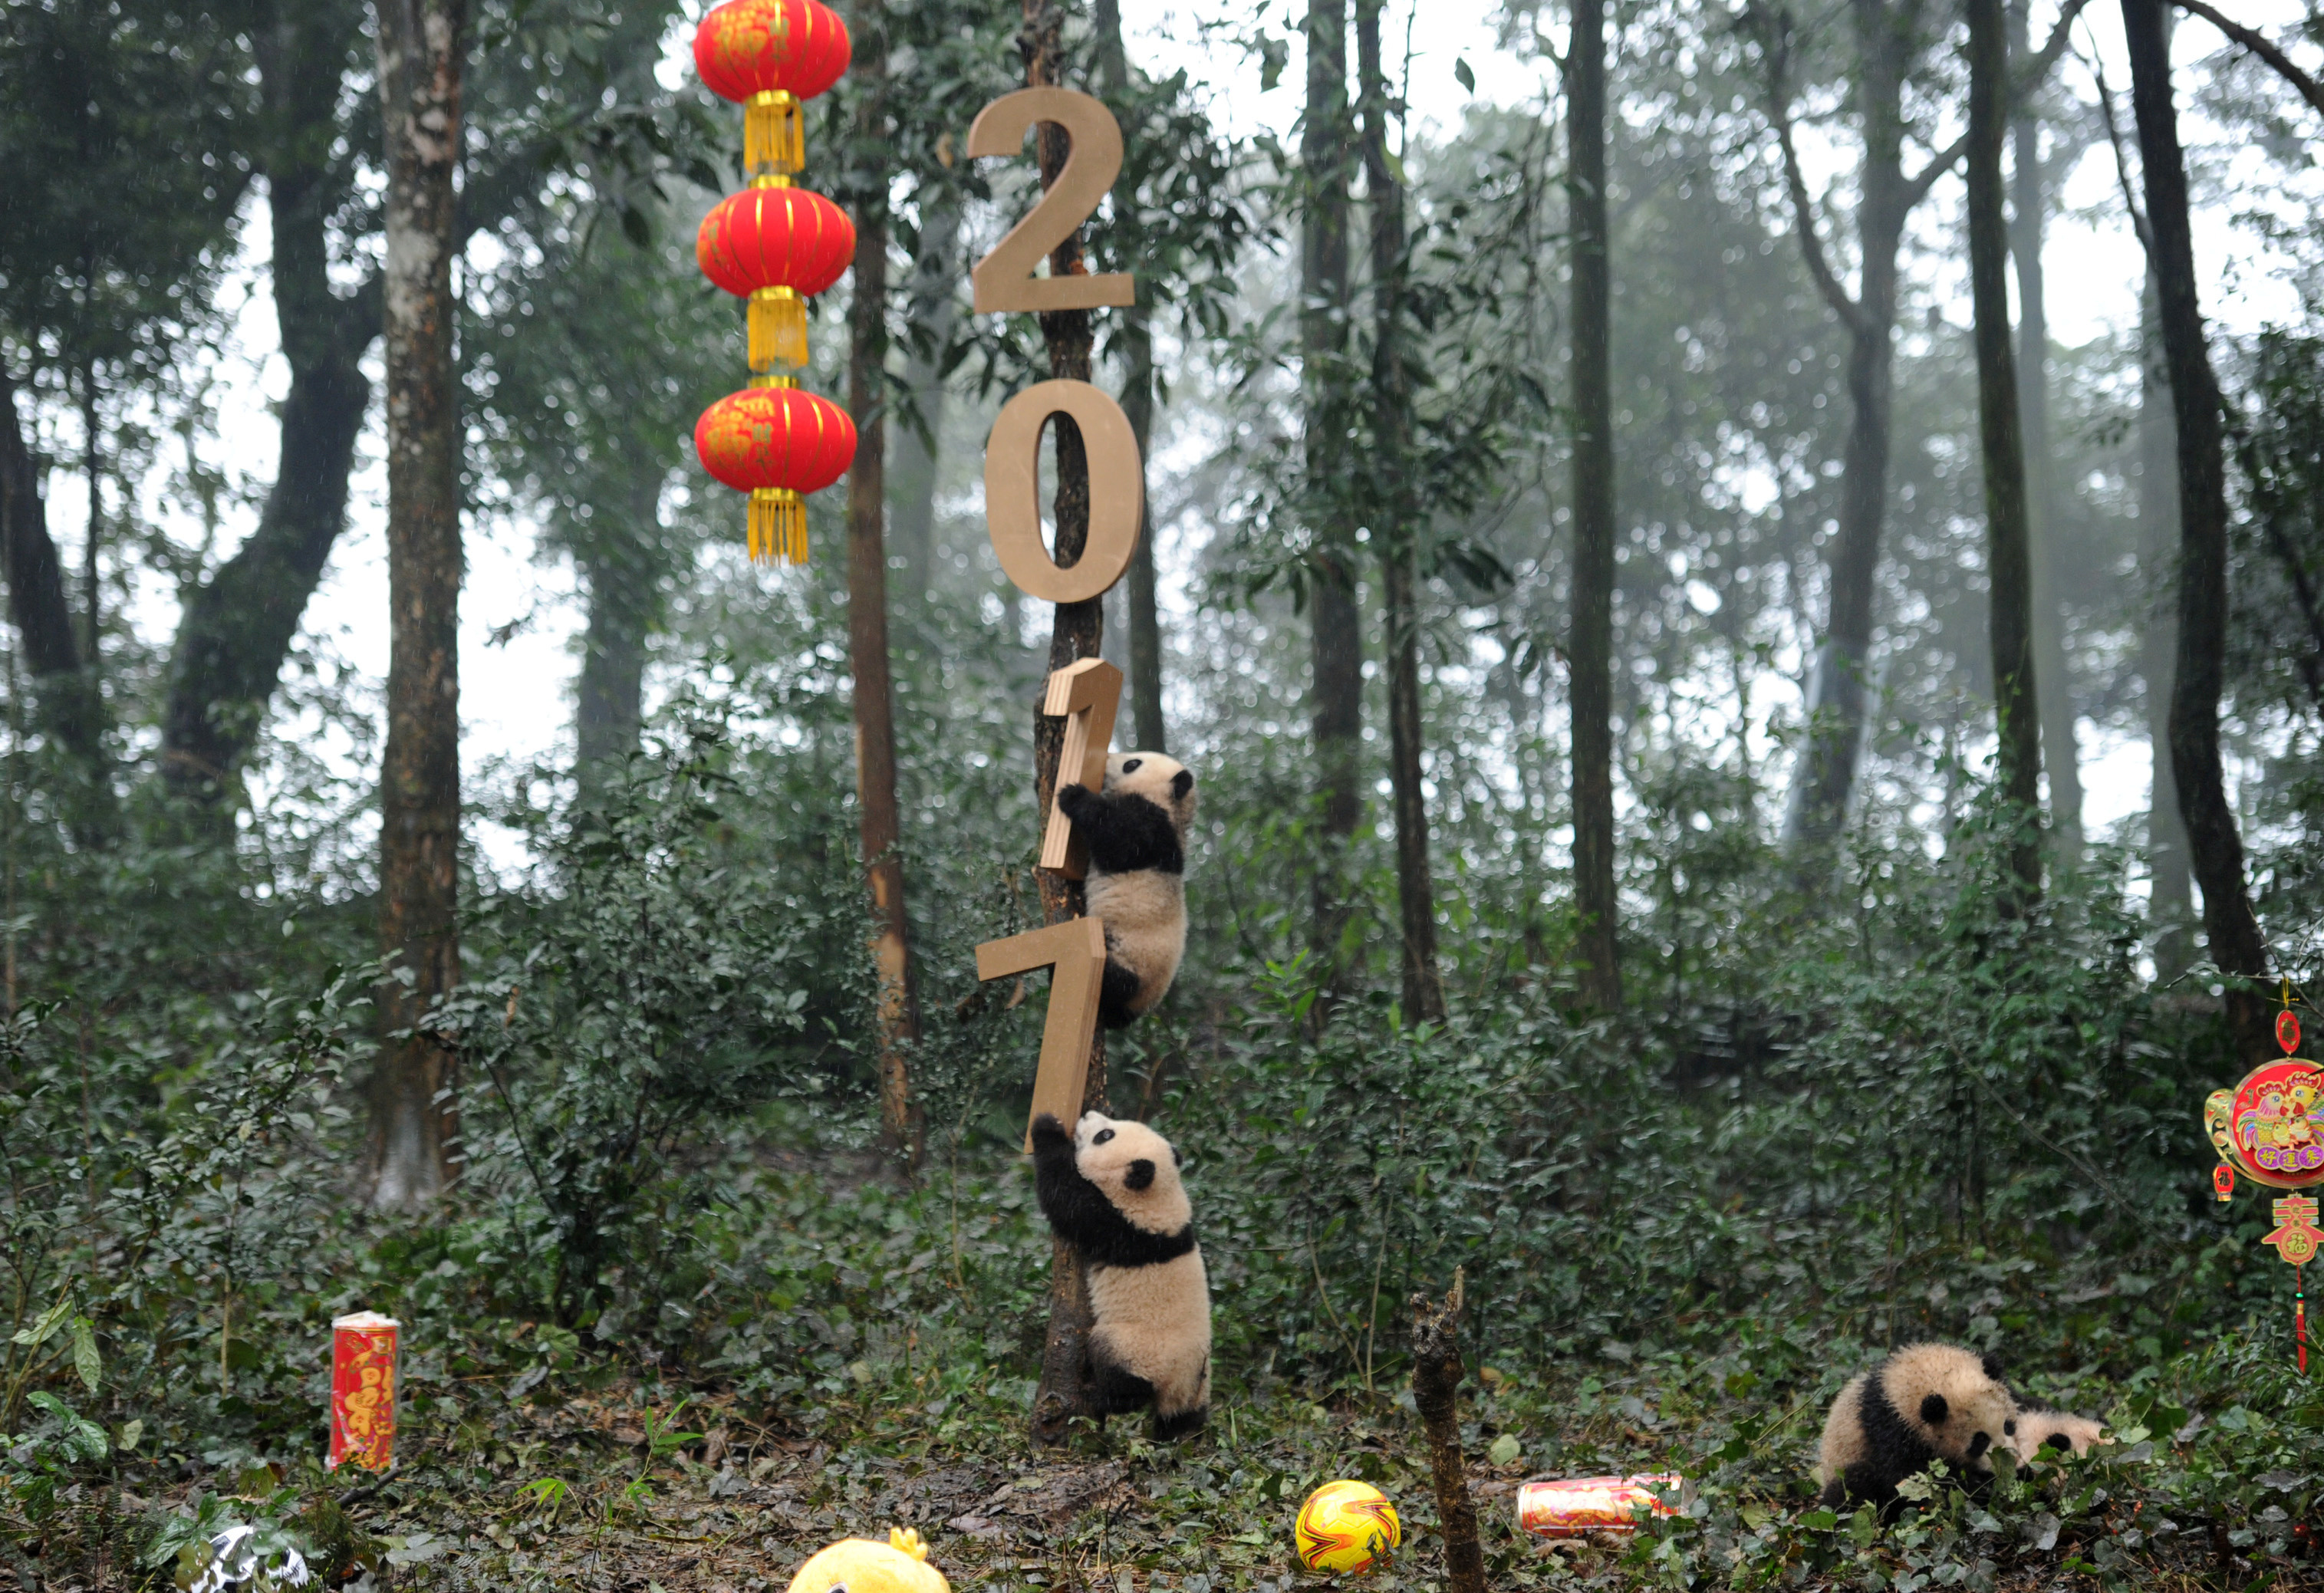 Giant panda cubs play with decorations during an event to celebrate China's Lunar New Year in a research base in Ya'an, Sichuan province, China January 11, 2017. China Daily via REUTERS ATTENTION EDITORS - THIS PICTURE WAS PROVIDED BY A THIRD PARTY. CHINA OUT. NO COMMERCIAL OR EDITORIAL SALES IN CHINA - RTX2YG71